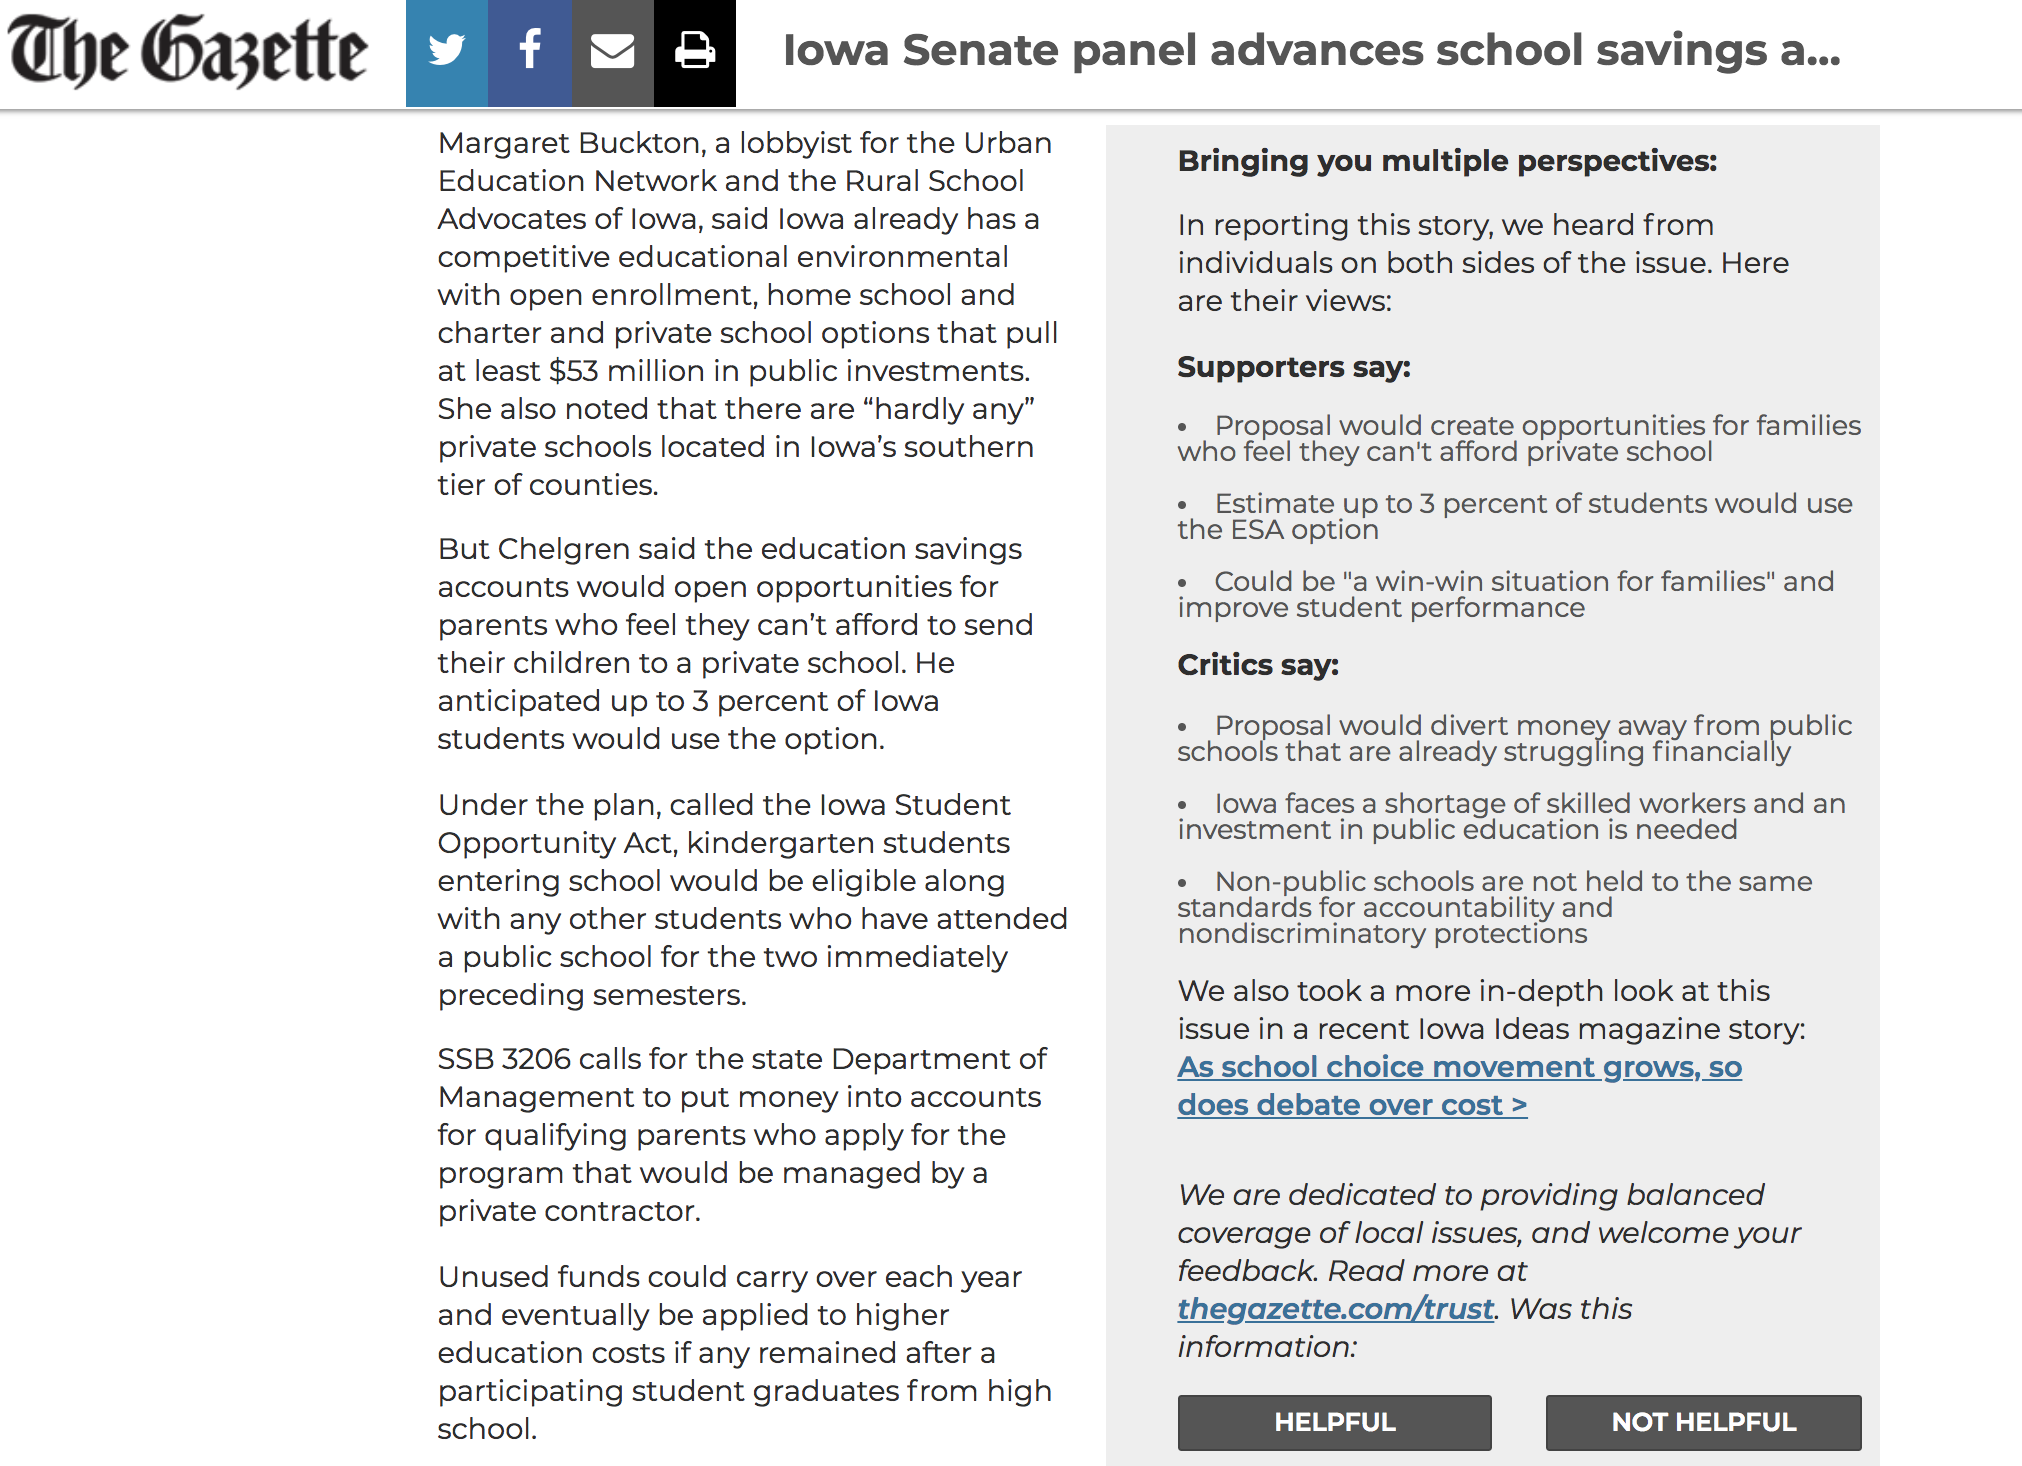 screenshot from thegazette.com, showing a pull-out box with multiple perspectives.